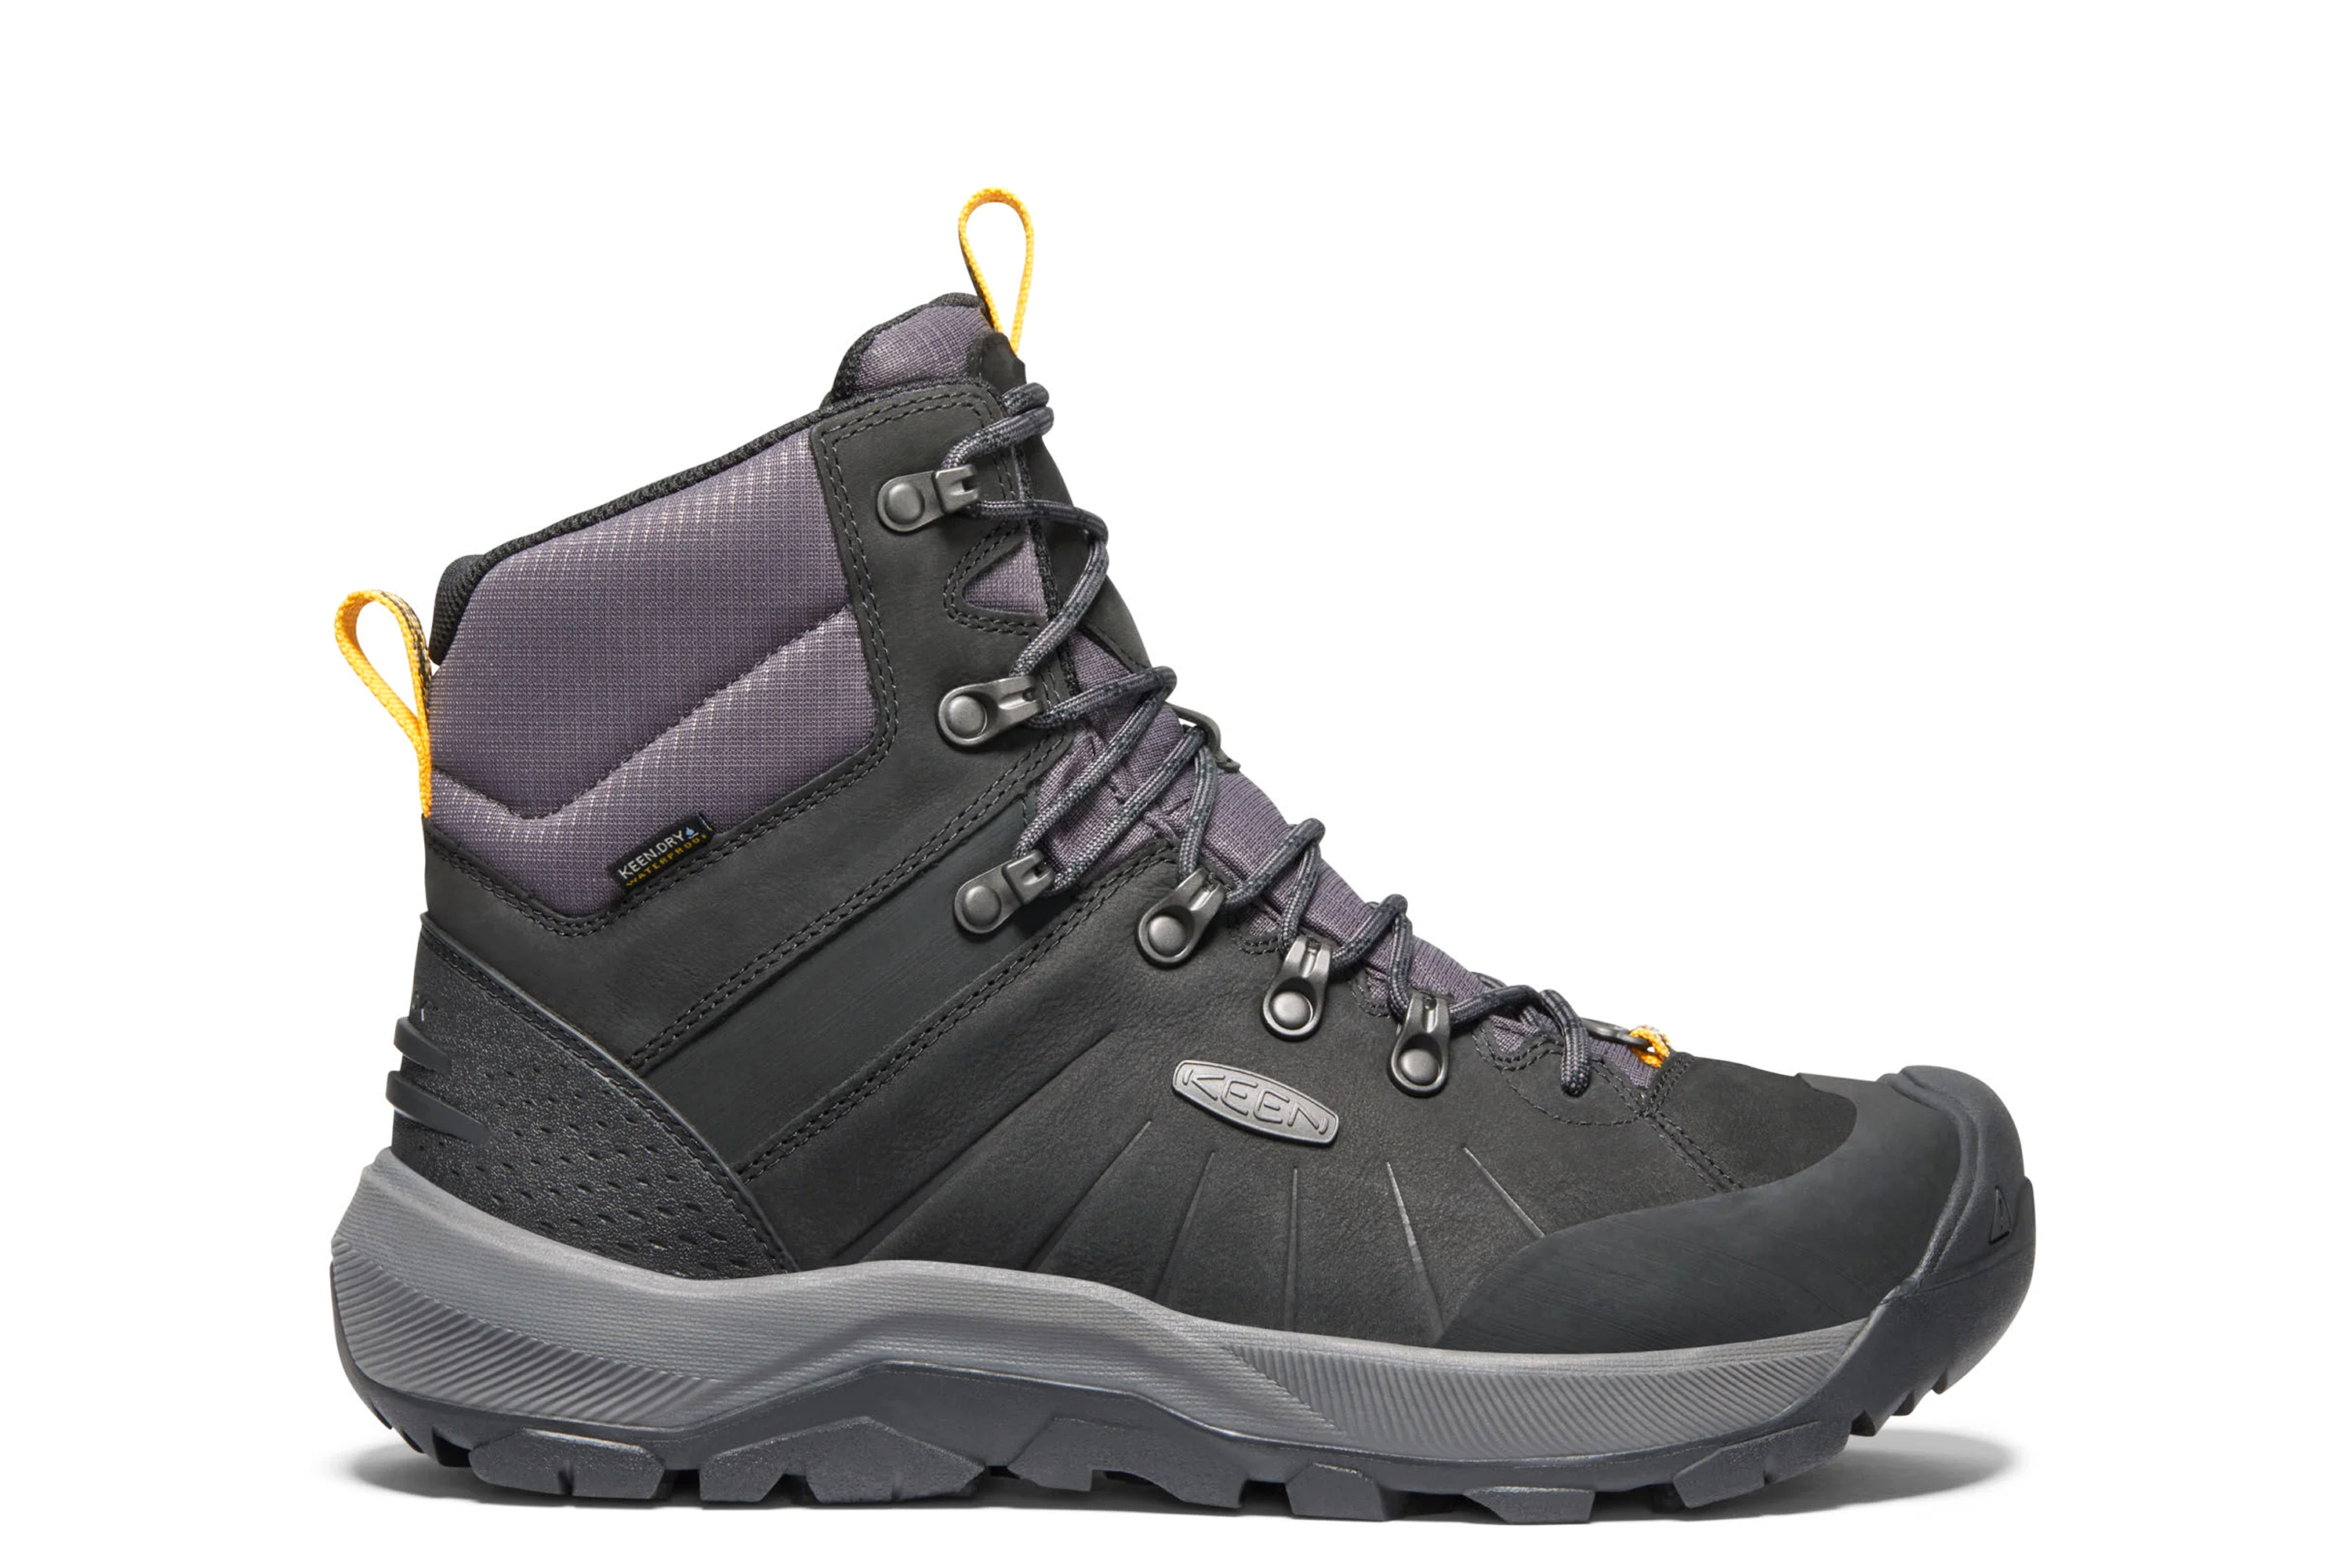 Best_Winter_Boot_Men_hiking_Keen_Revel_IV_Polar